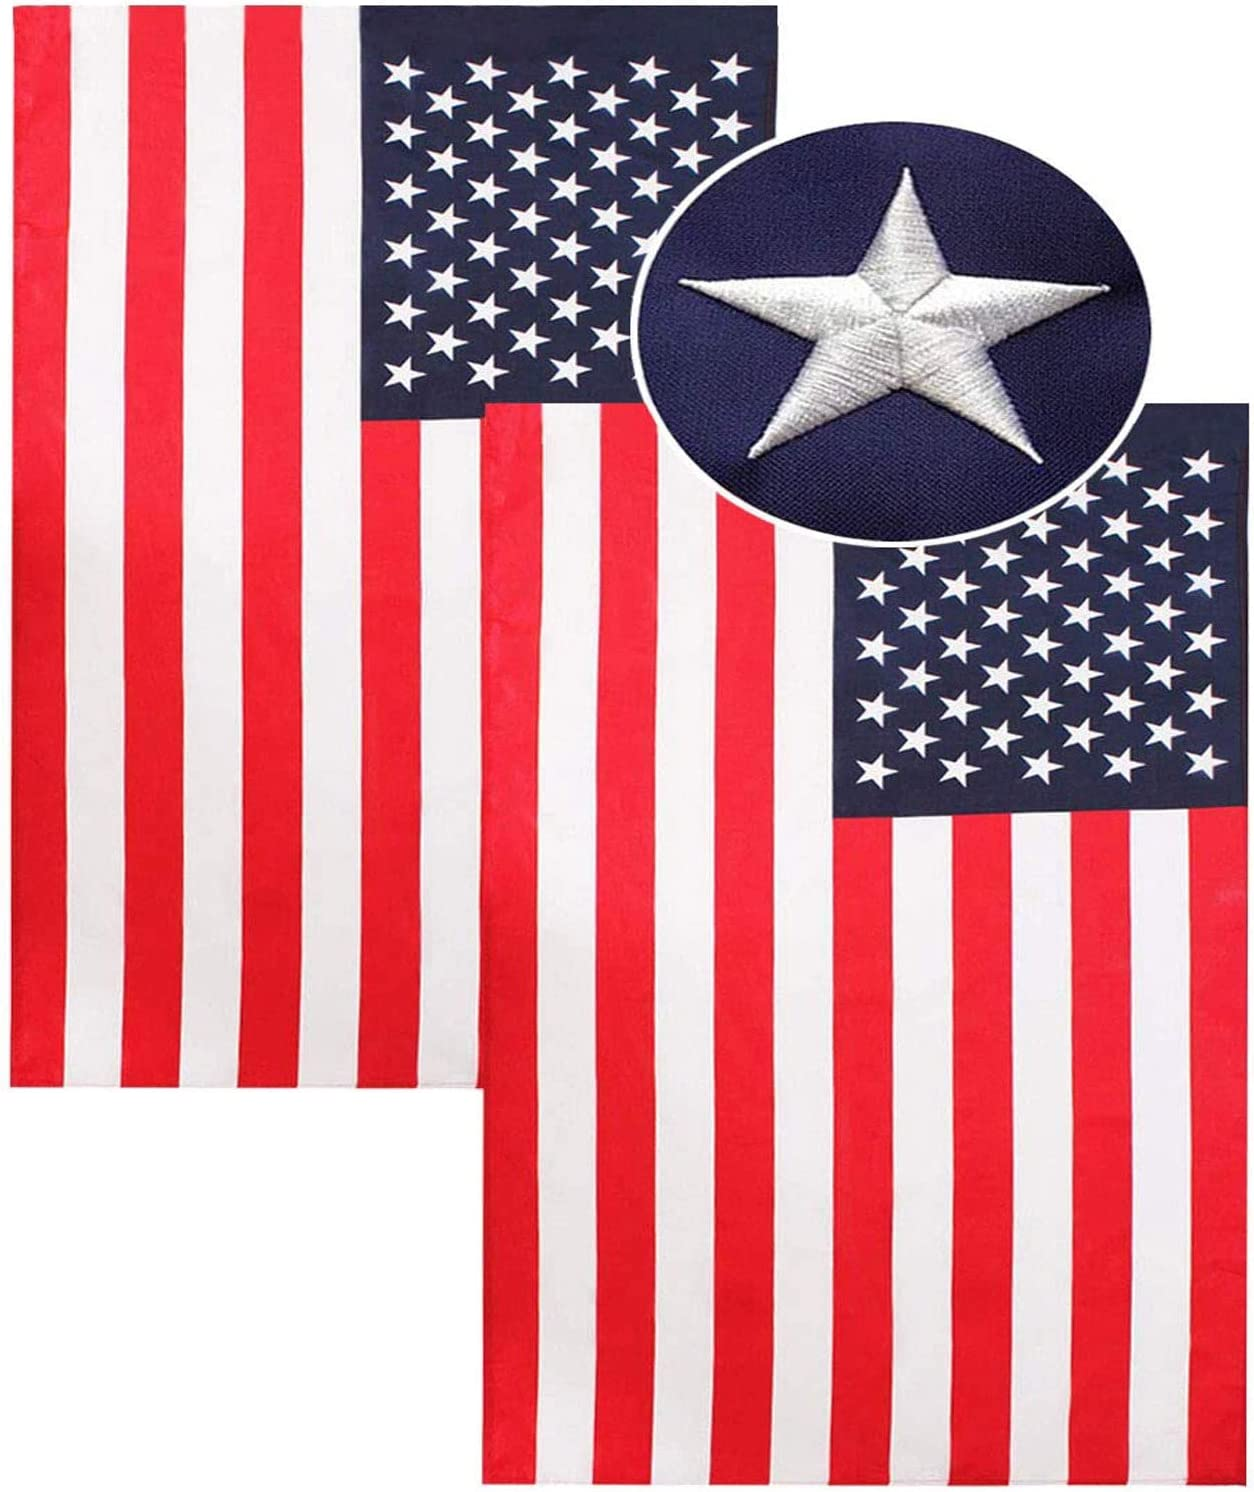 American Flag 12''x18'', Sewn Stripes Embroidered Stars US Nylon Flag for Outdoor and Indoor Use, Office Workplace Home Garden Business